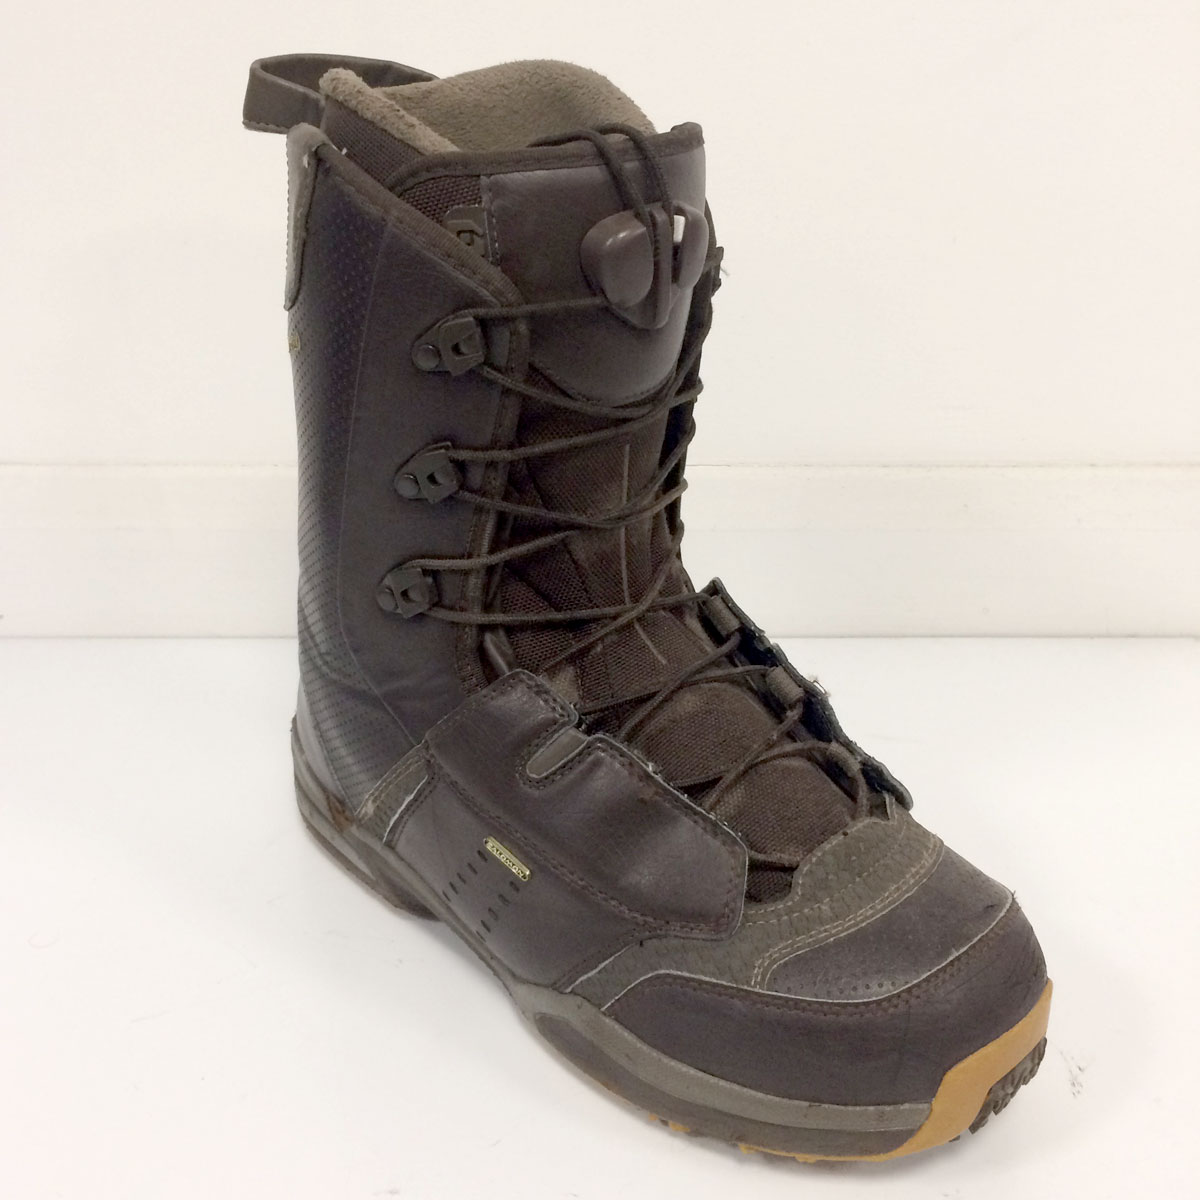 642337488d Used Salomon Dialogue Snowboard Boots - Mens UK 9.5 - OK Condition - 6/10